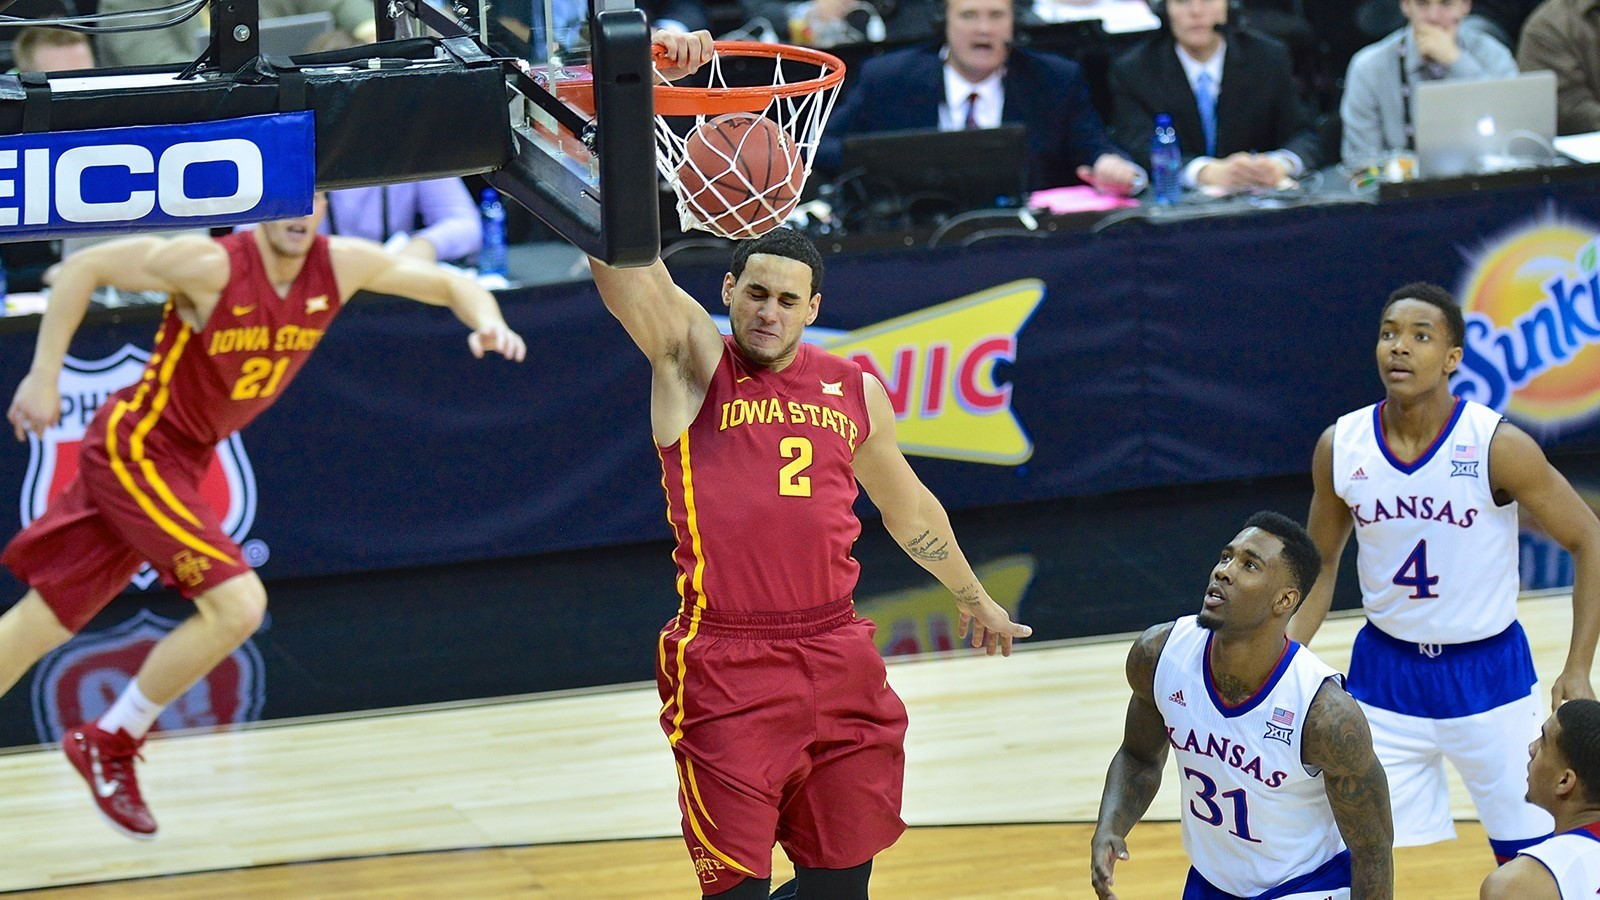 Abdel Nader - Men s Basketball - Iowa State University Athletics 1aa4e2c3c